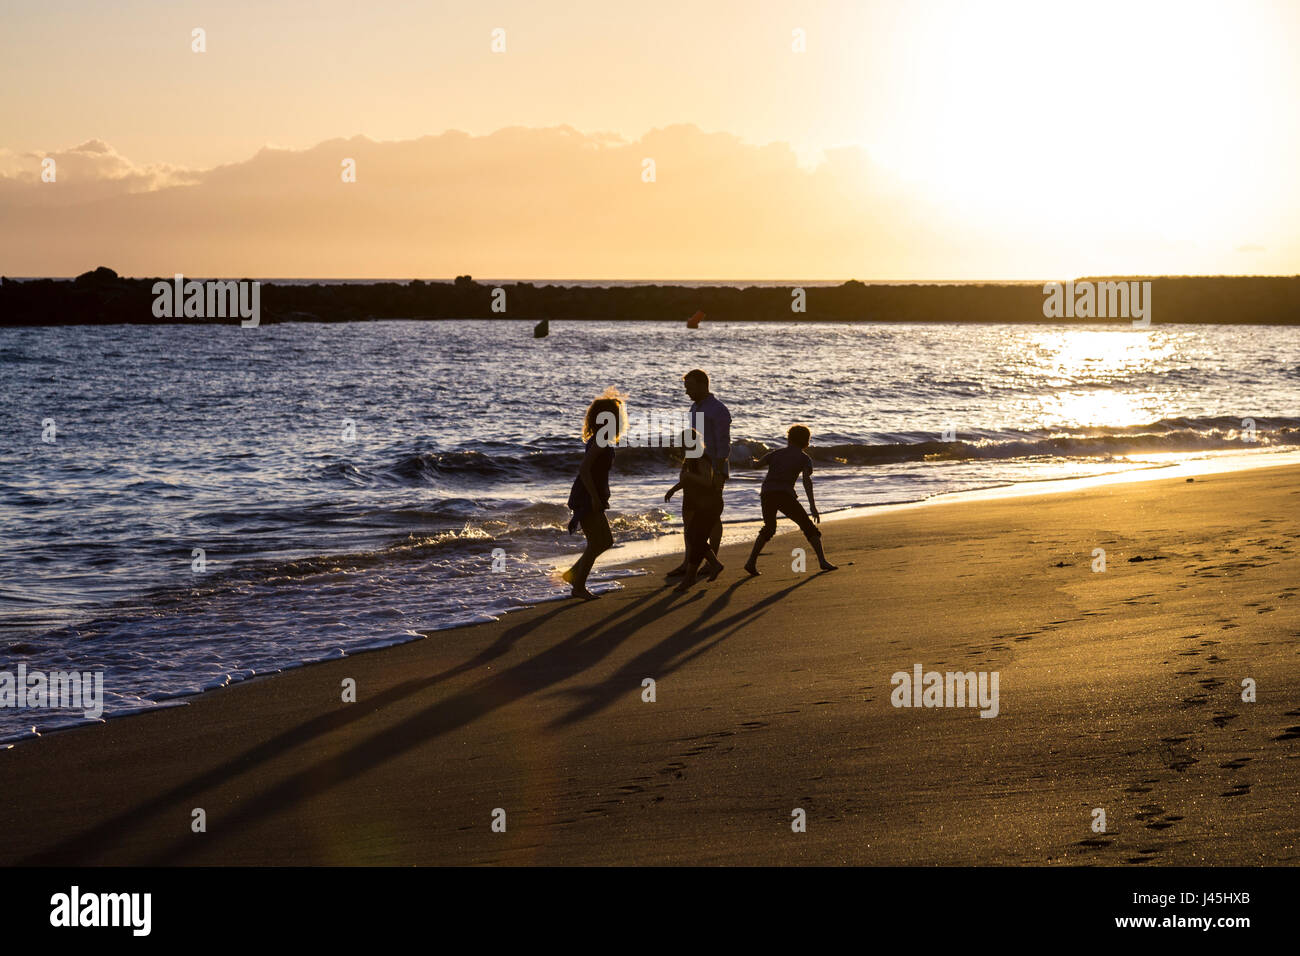 Silhouettes of a family on a beach at sundown (Tenerife, Spain) - Stock Image